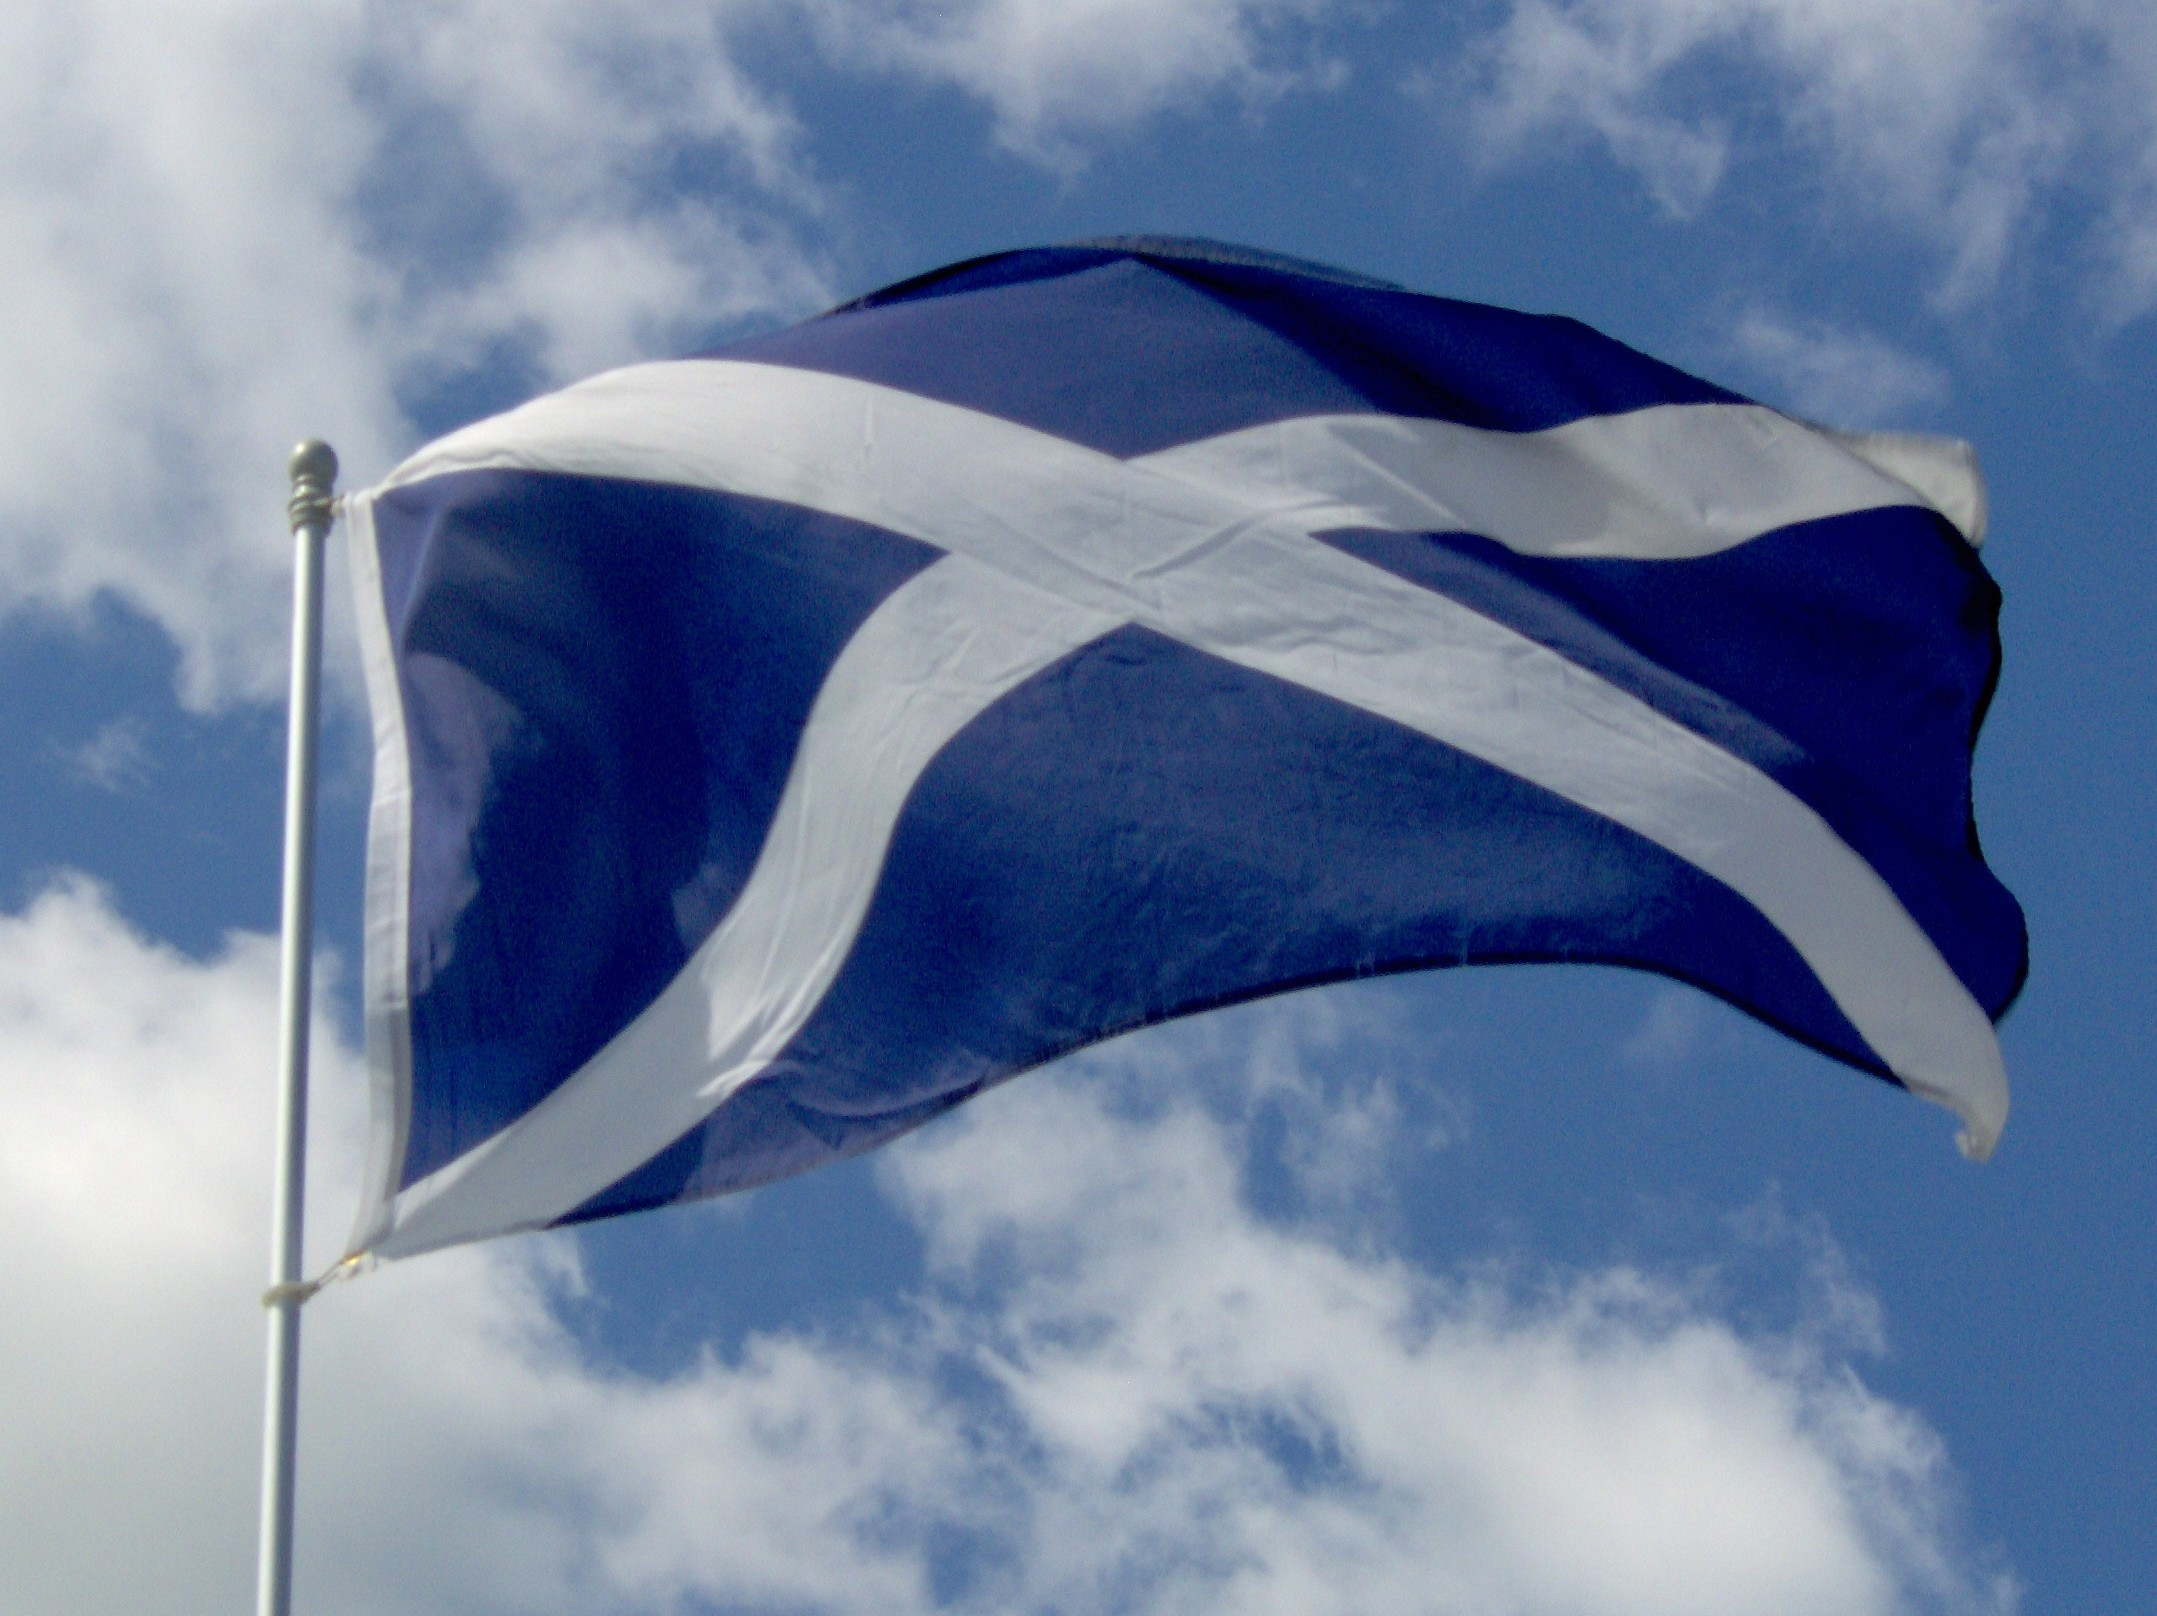 Scottish insolvency levels continue long-term decline